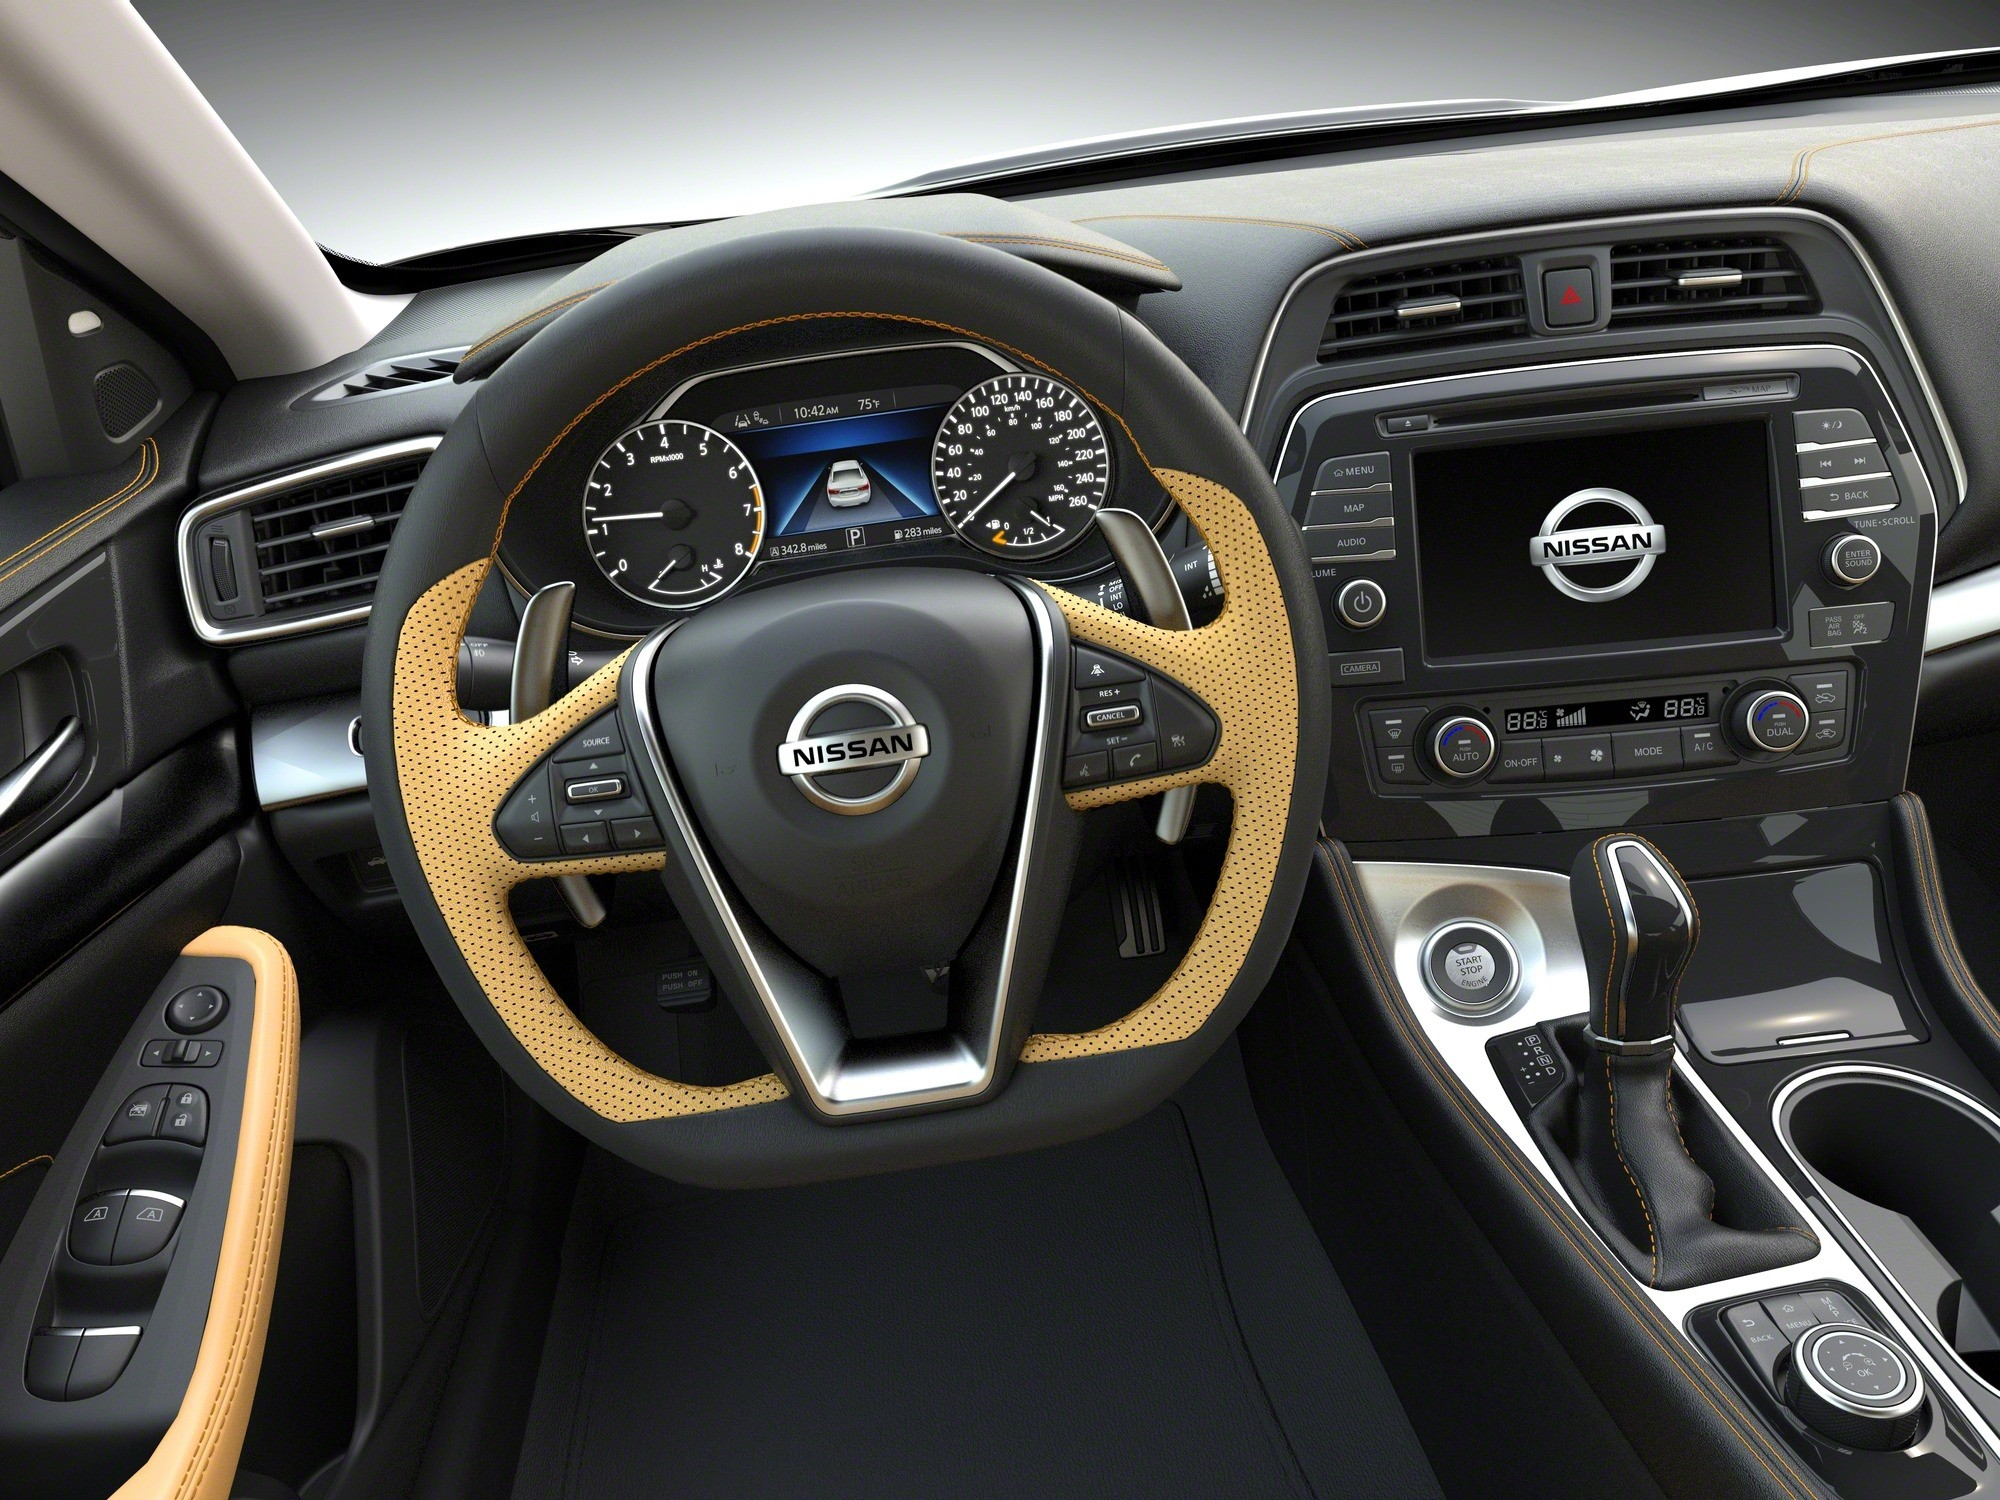 2016-nissan-maxima-revealed-in-new-york-prices-start-at-32410-msrp-photo-gallery_30